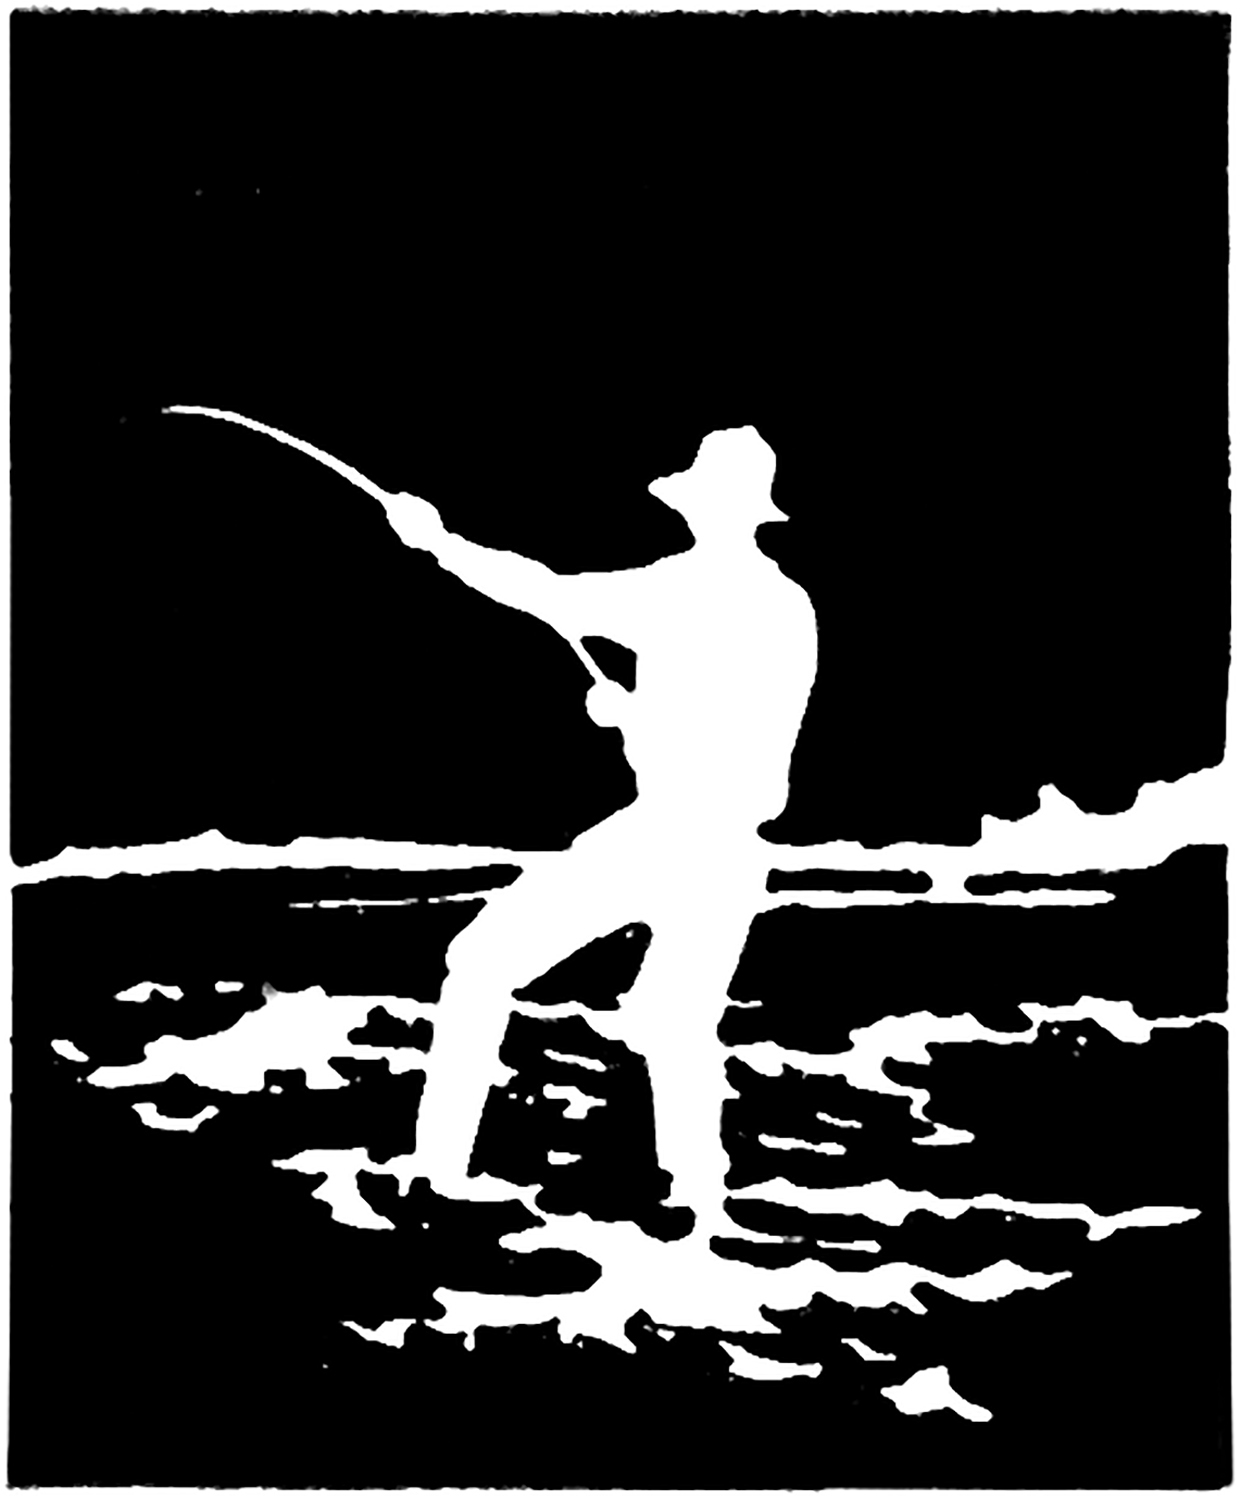 Vintage Fishing Silhouette Image